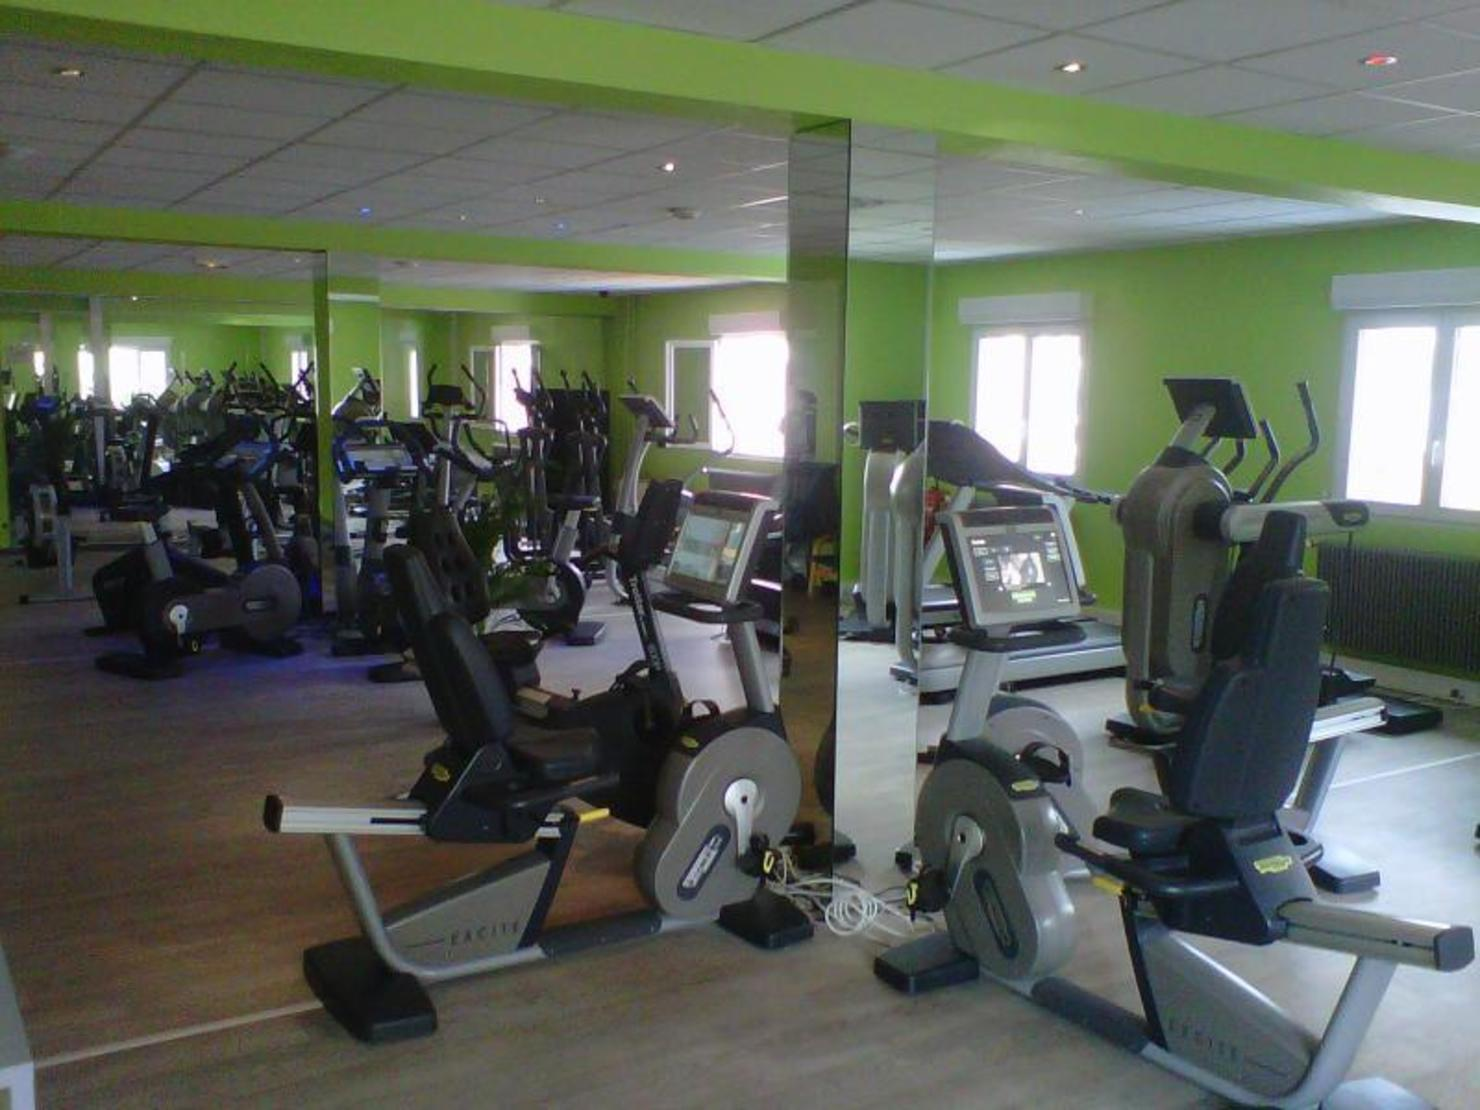 d fi gym belfort tarifs avis horaires essai gratuit. Black Bedroom Furniture Sets. Home Design Ideas